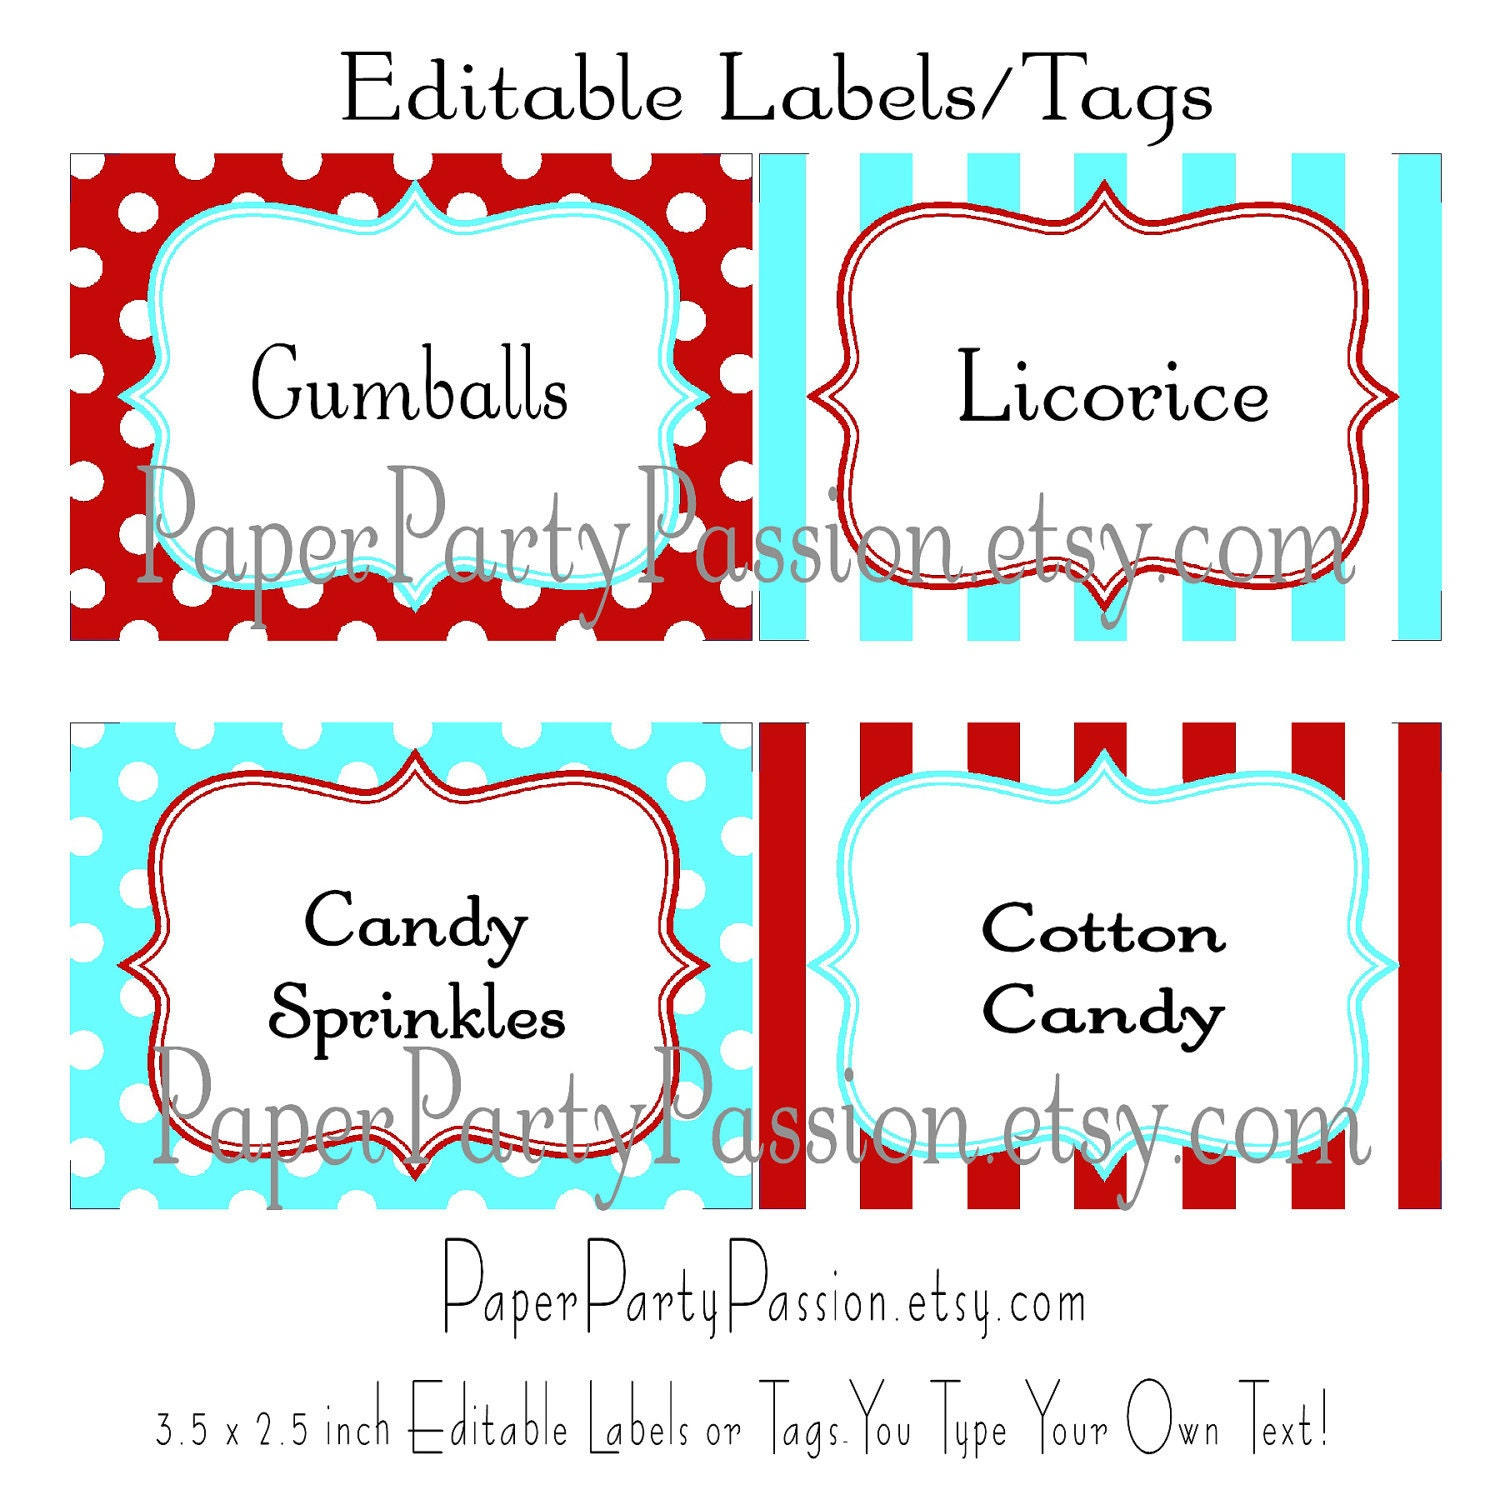 Free Editable Printable Tags And editable party labels